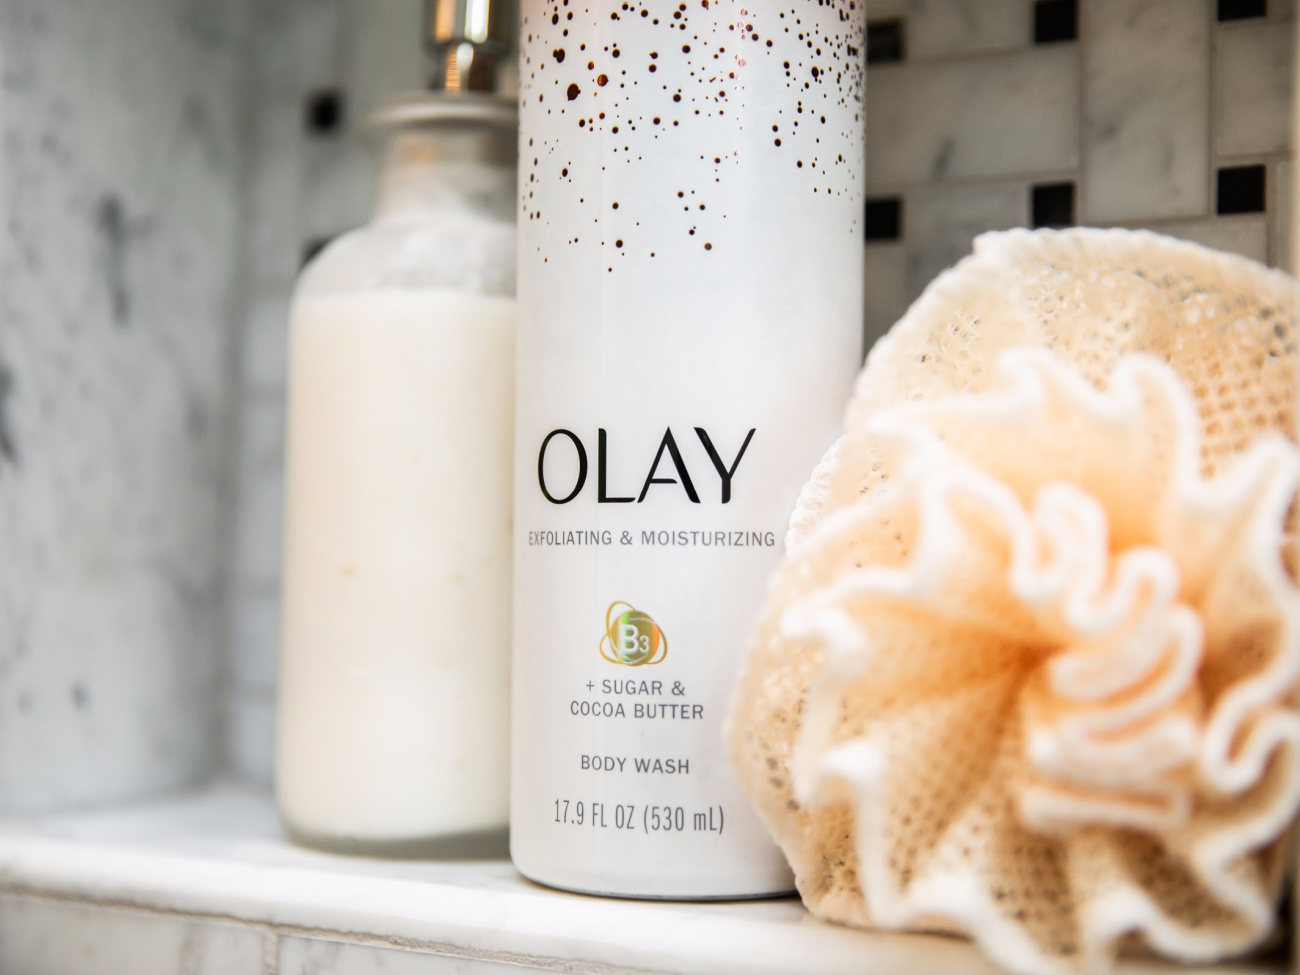 Olay Body Wash Just $2.99 At Publix on I Heart Publix